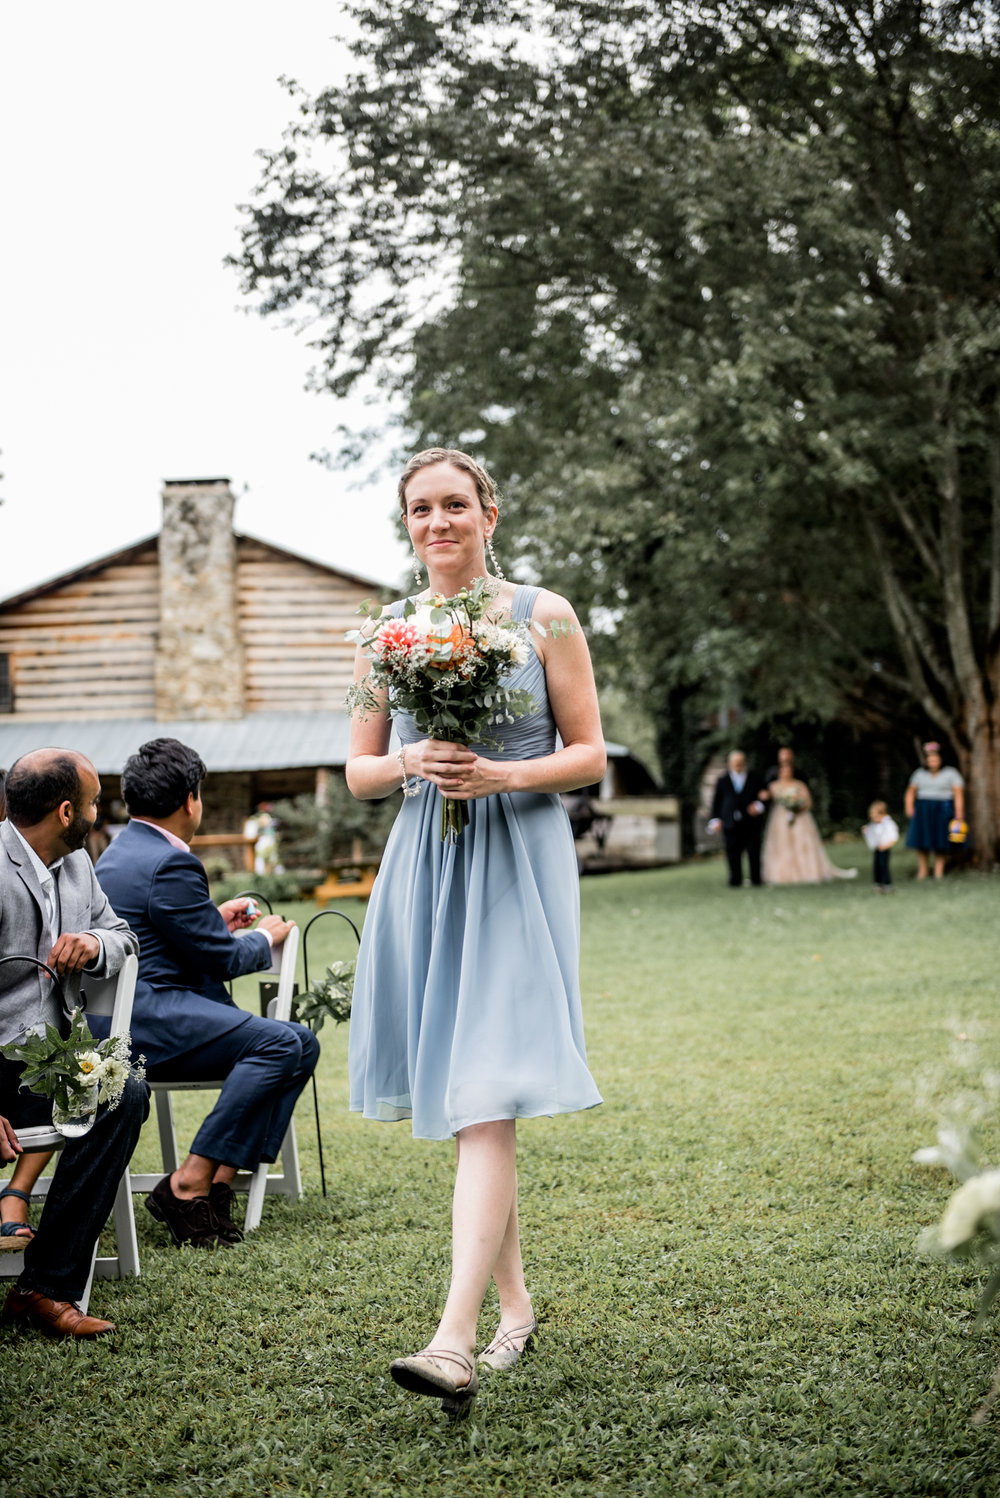 bridesmaid walks down aisle